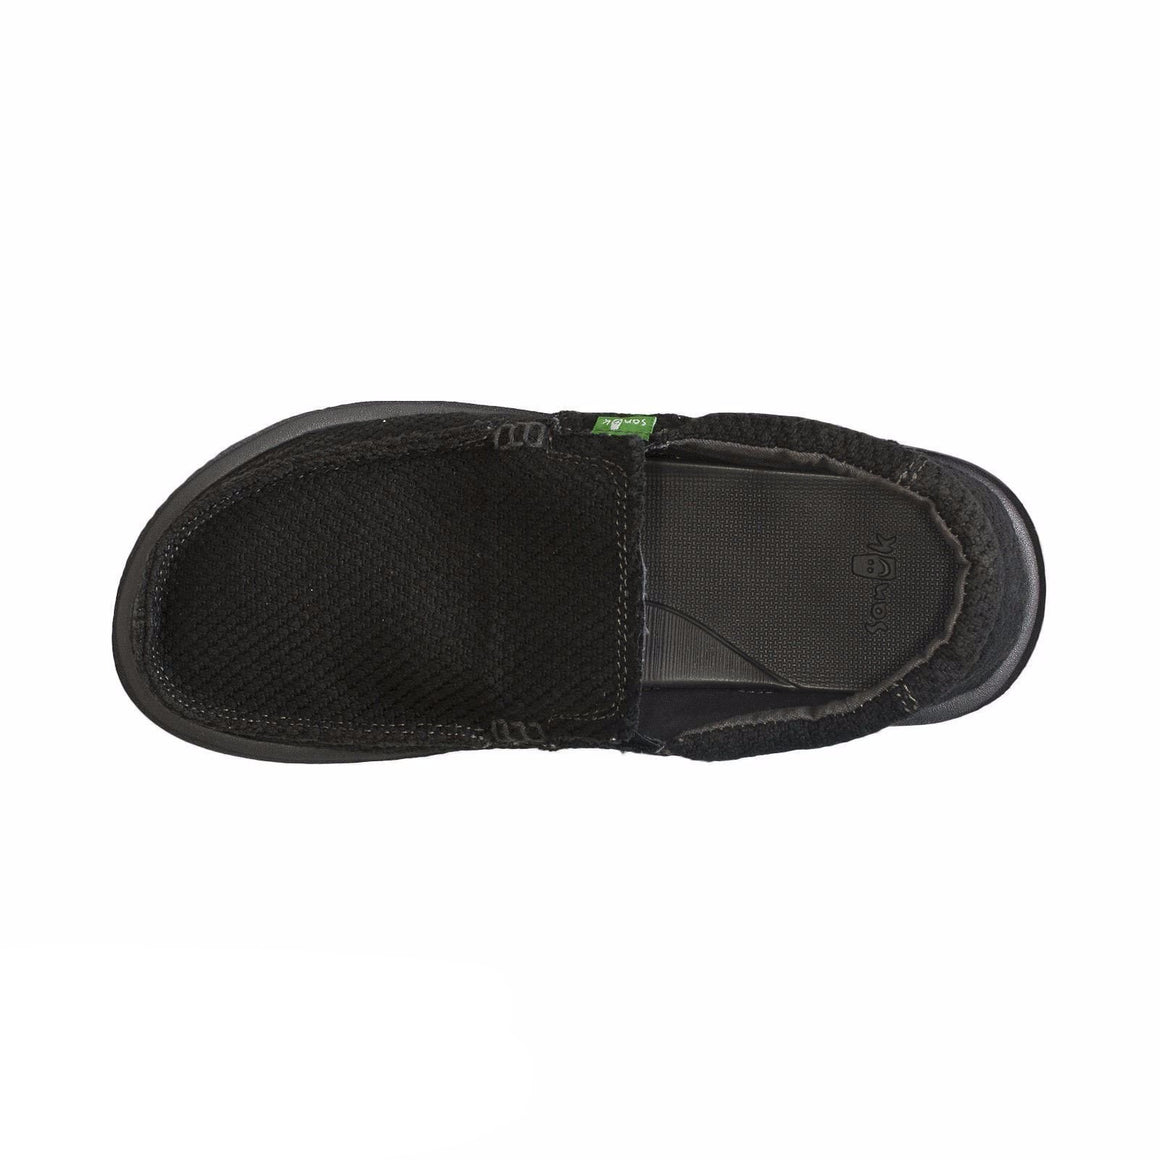 Sanuk Chibalicious Black Hemp Shoes